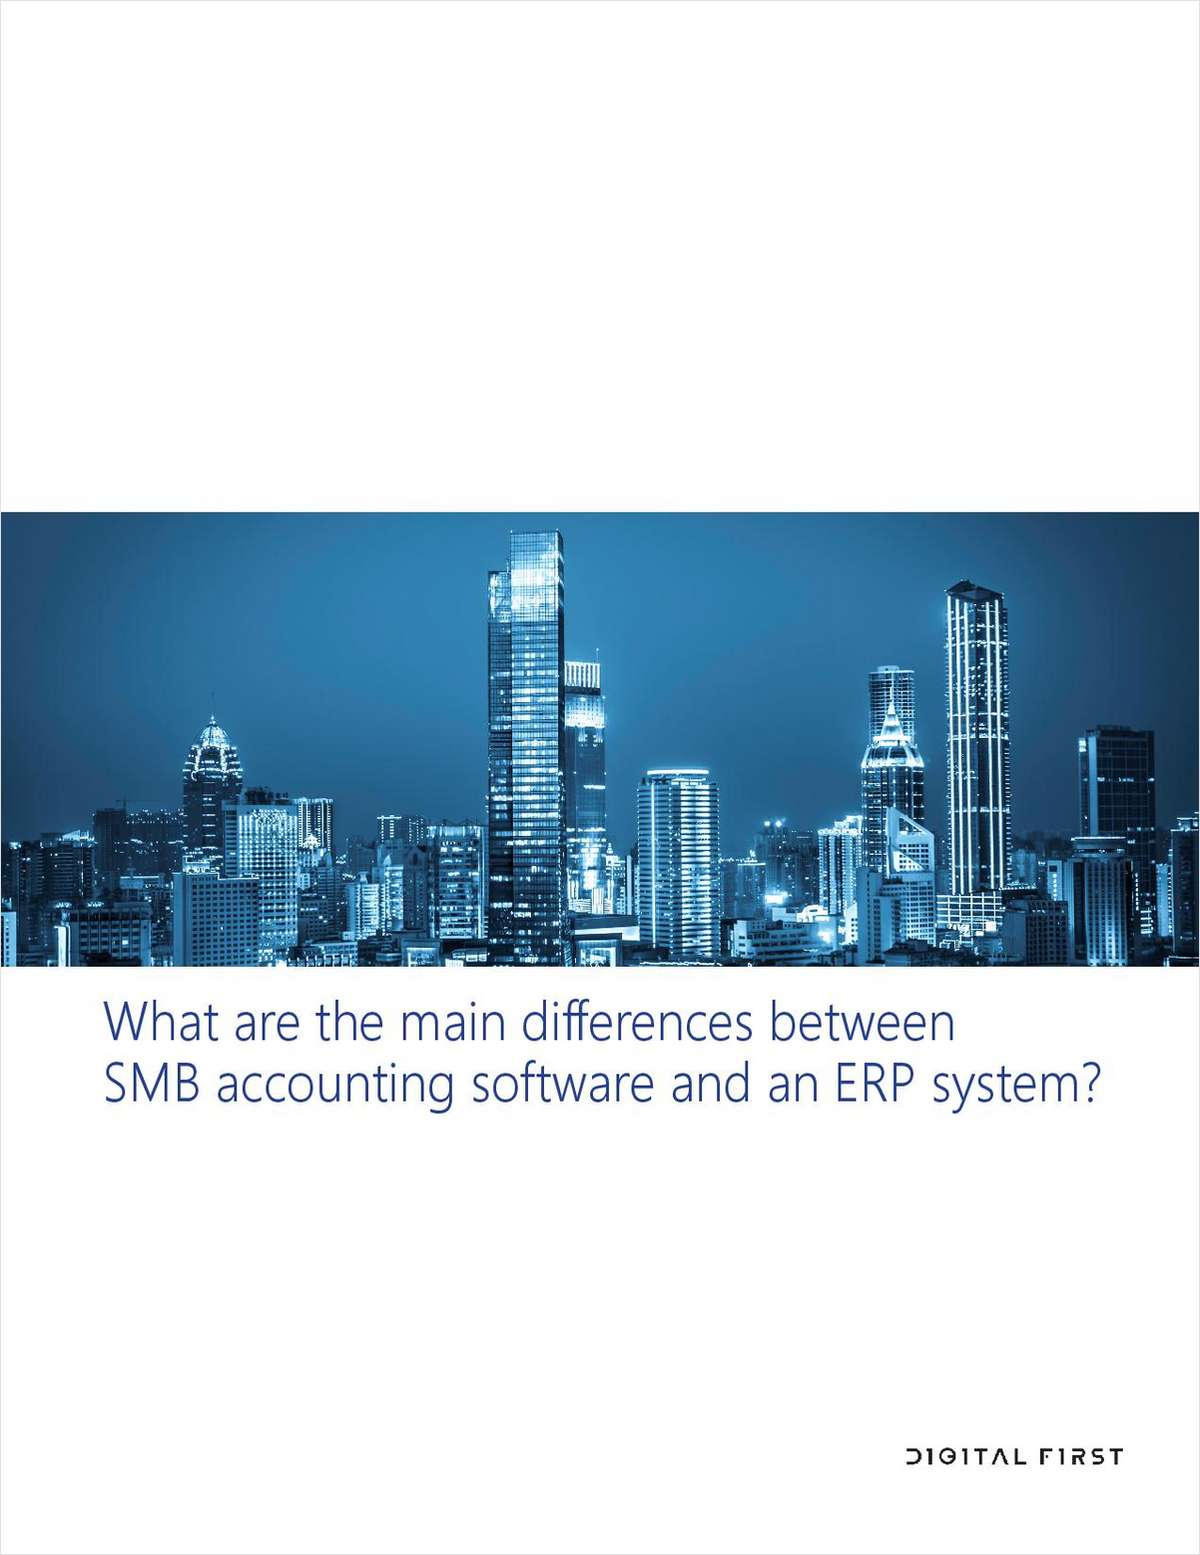 Battle of the Software Solution: SMB Accounting Software vs. ERP